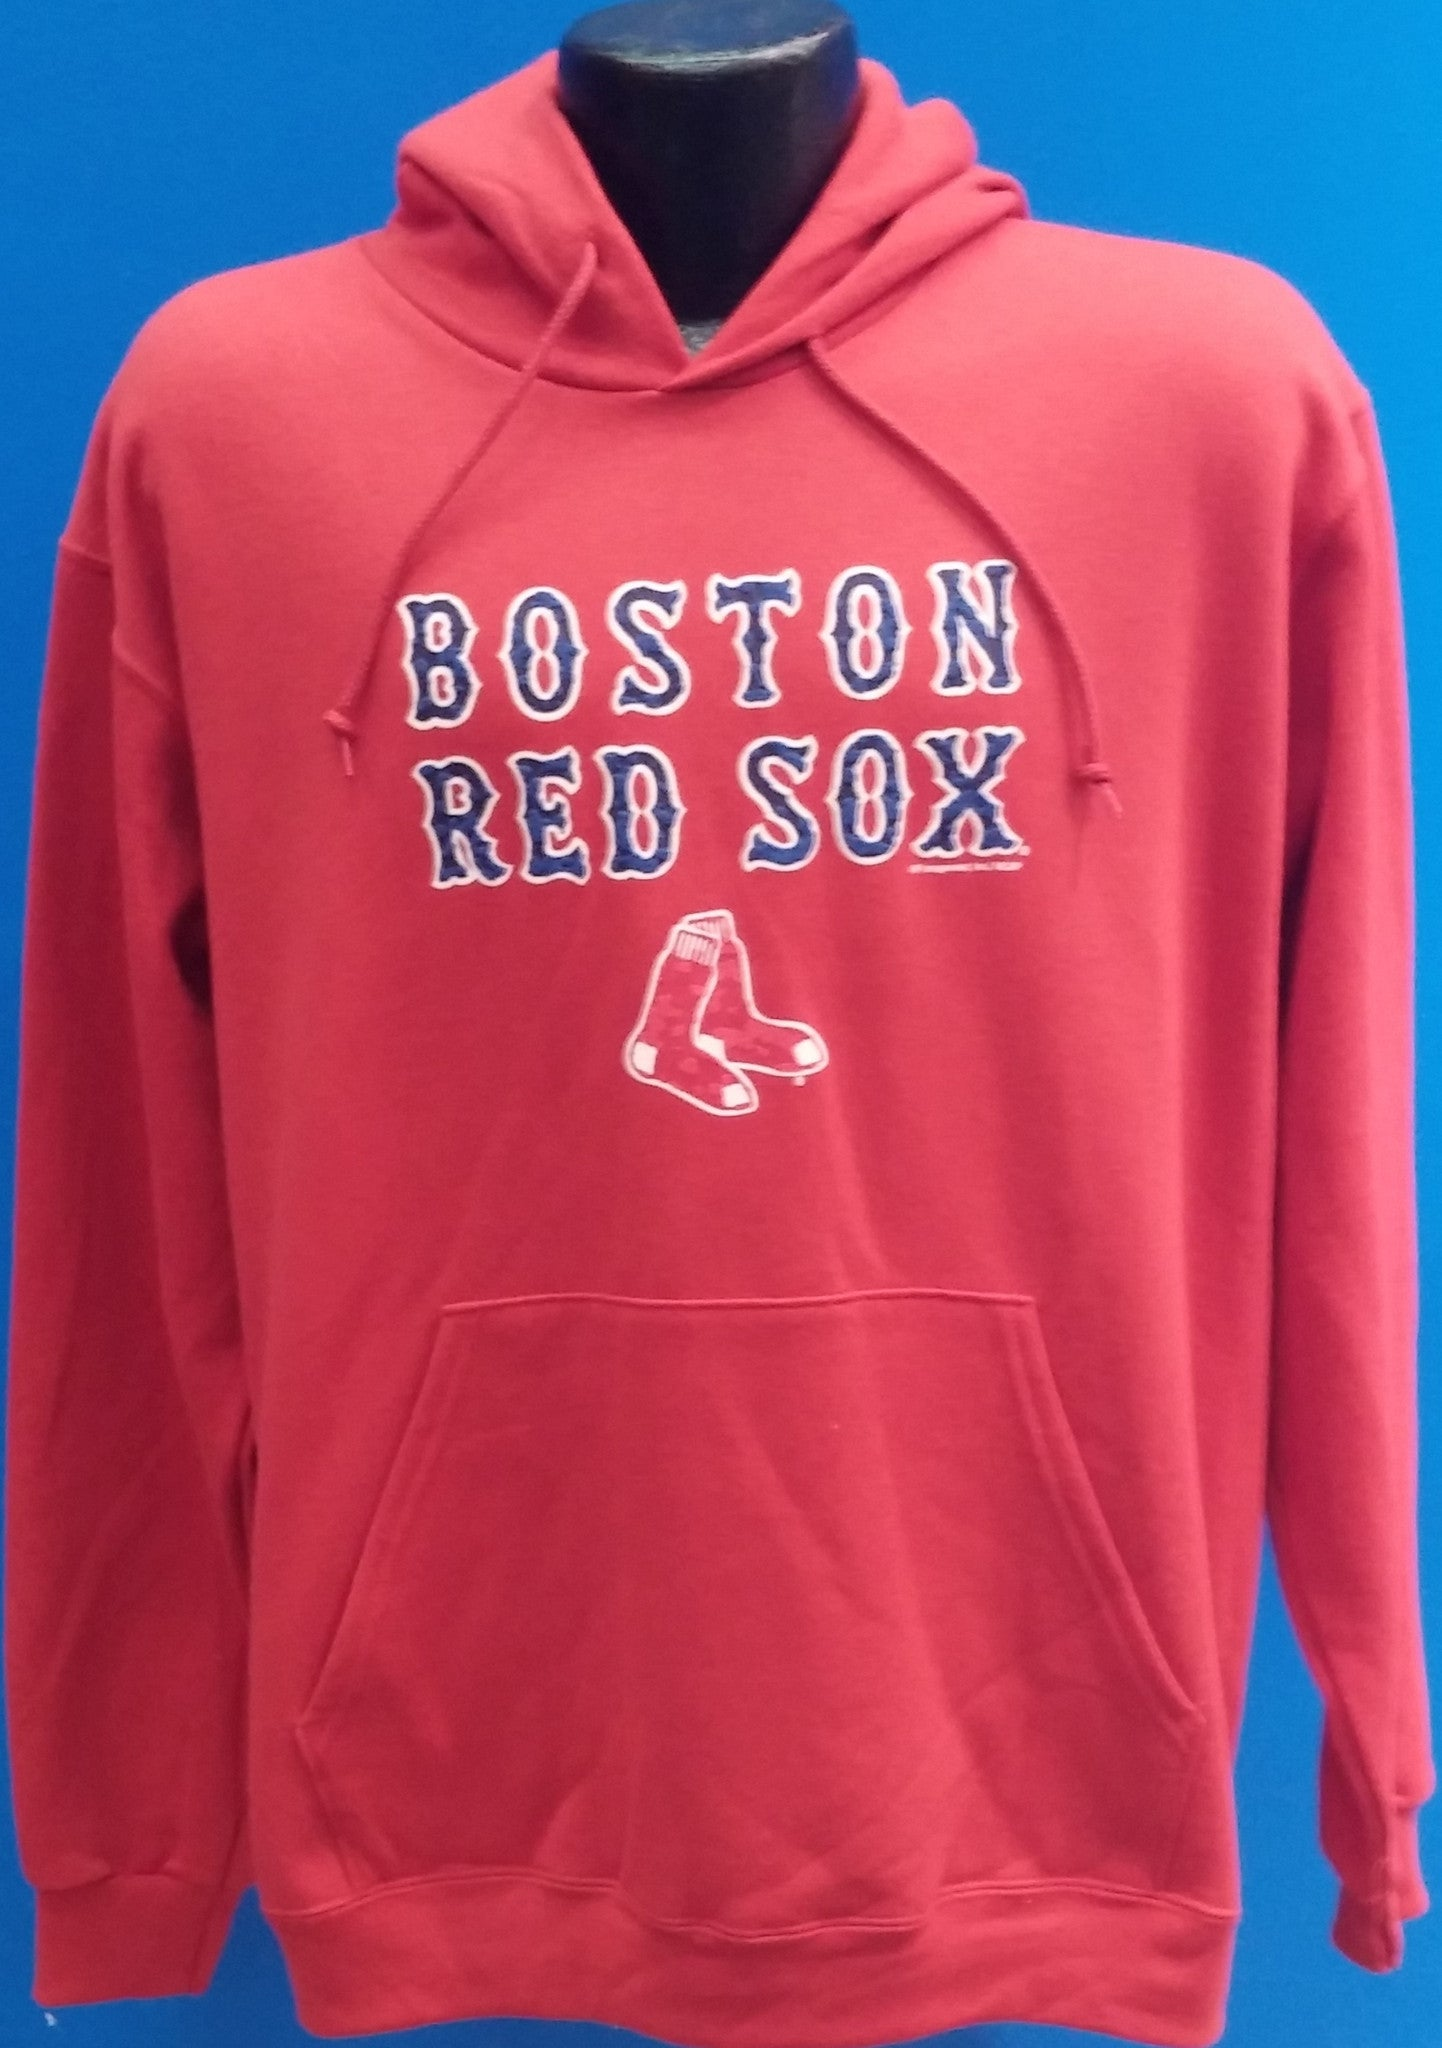 reputable site e7ac7 aad49 Boston Red Sox Red Pullover Hooded Sweatshirt - MLB Baseball Apparel